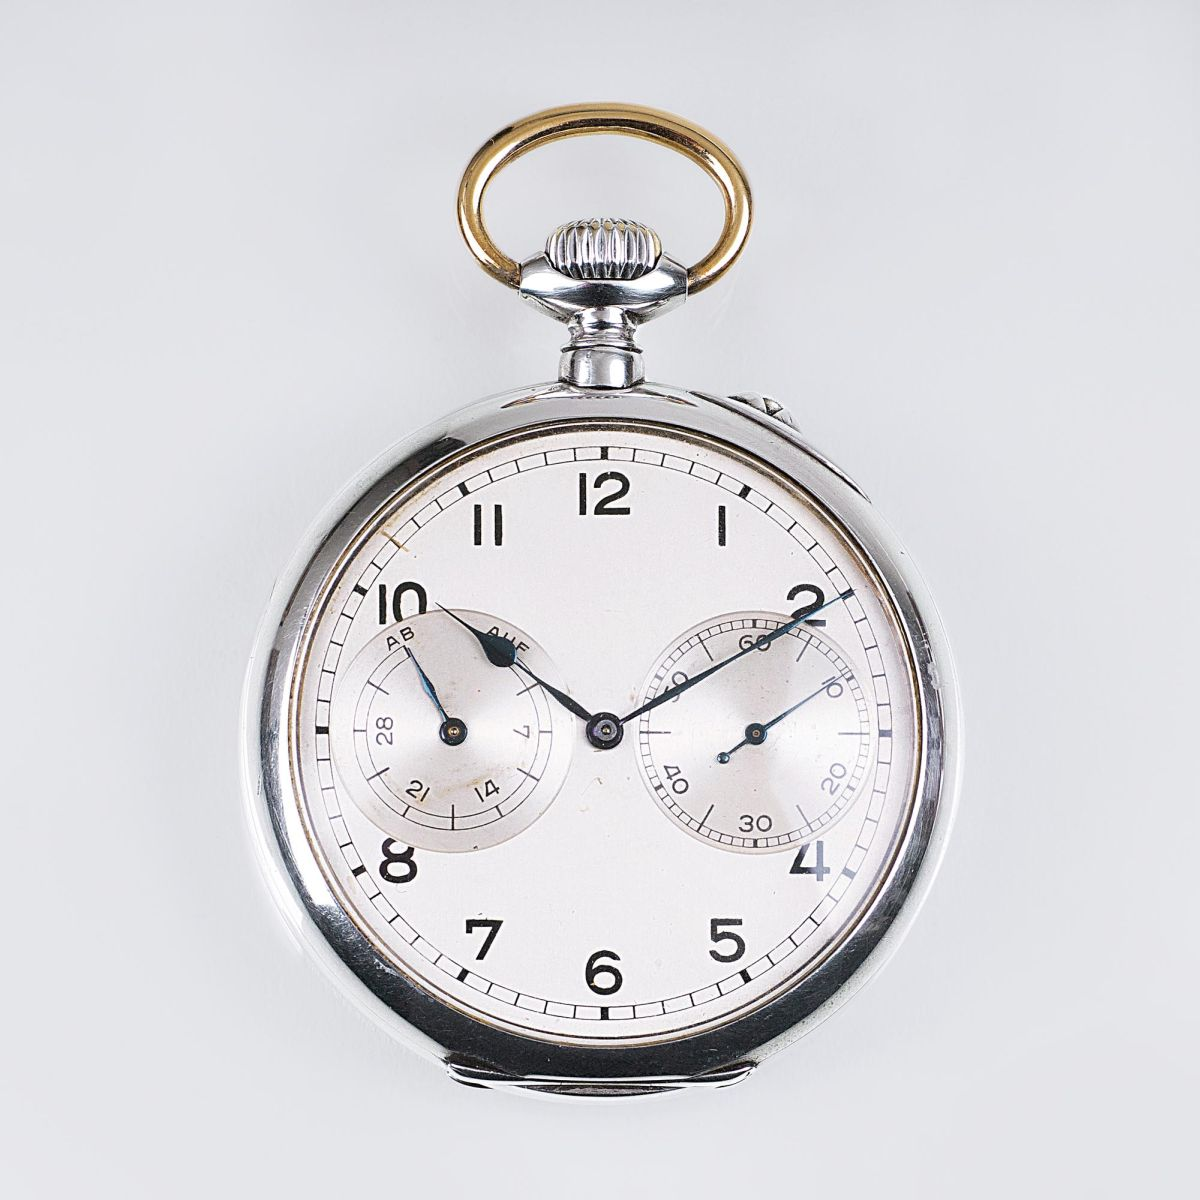 A Marine Observation Pocket Watch